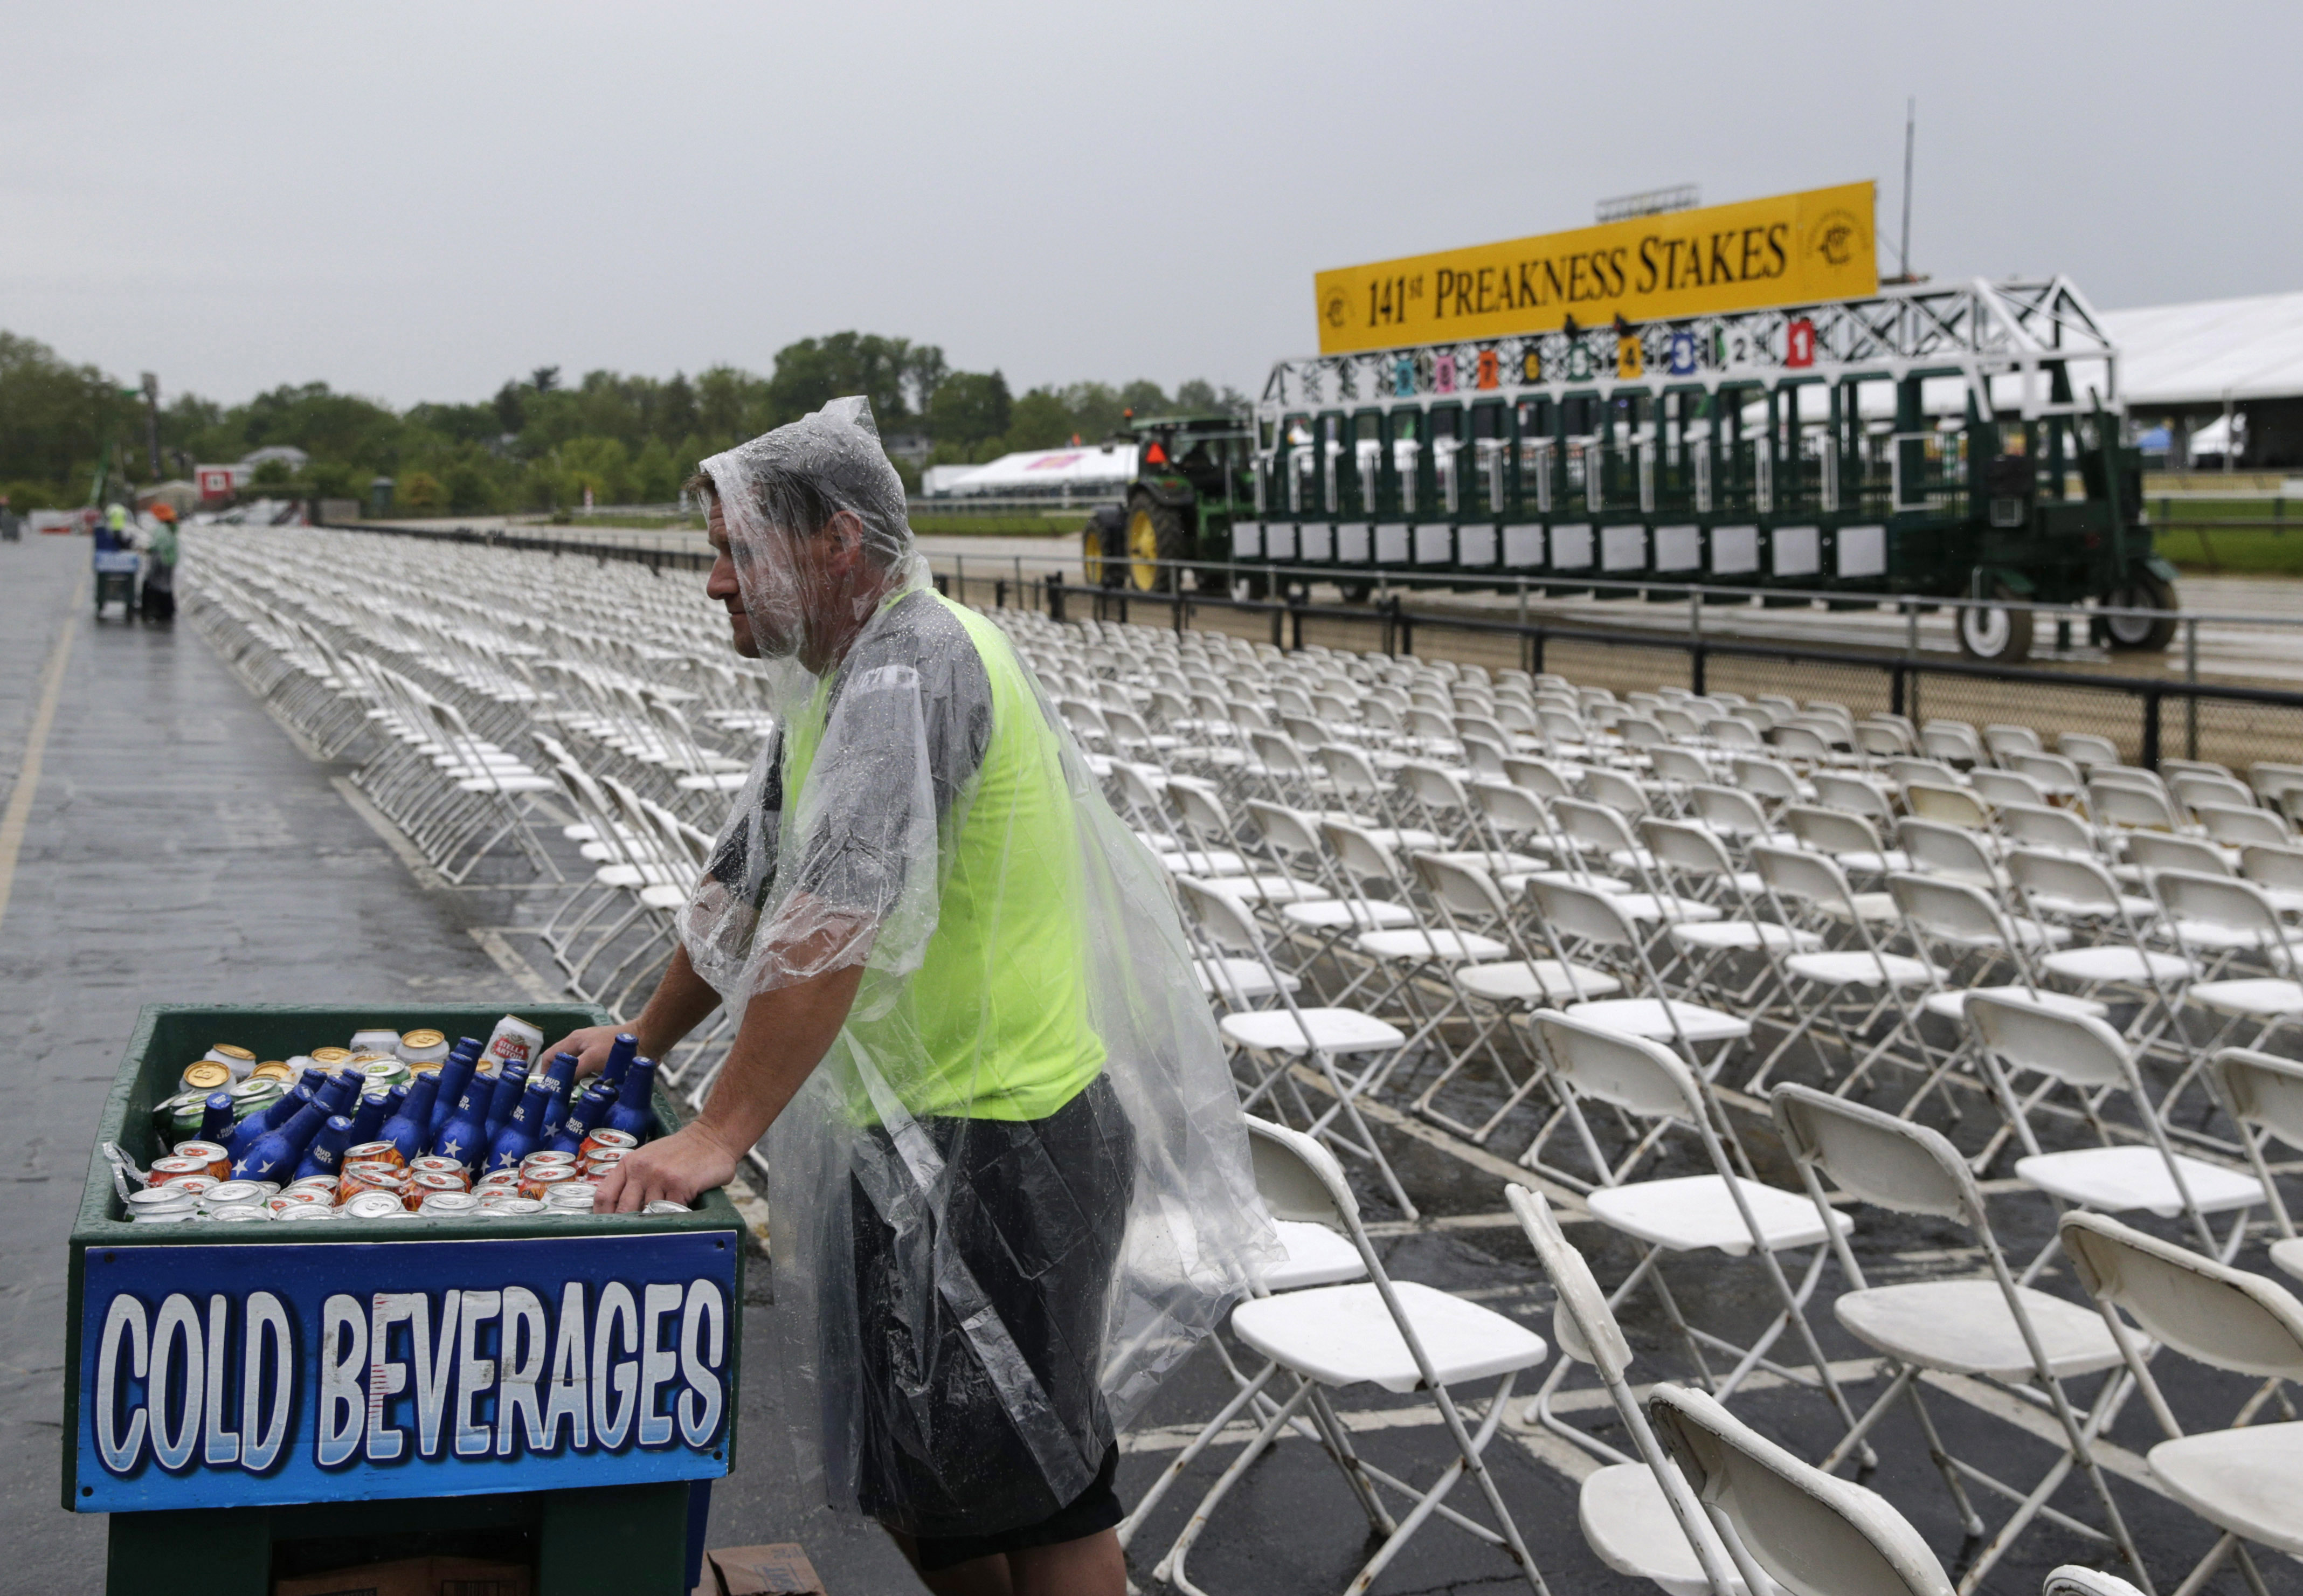 A beer vendor waits for customers as rain falls before the 141st Preakness Stakes horse race at Pimlico Race Course in Baltimore, Md., on May 21, 2016.